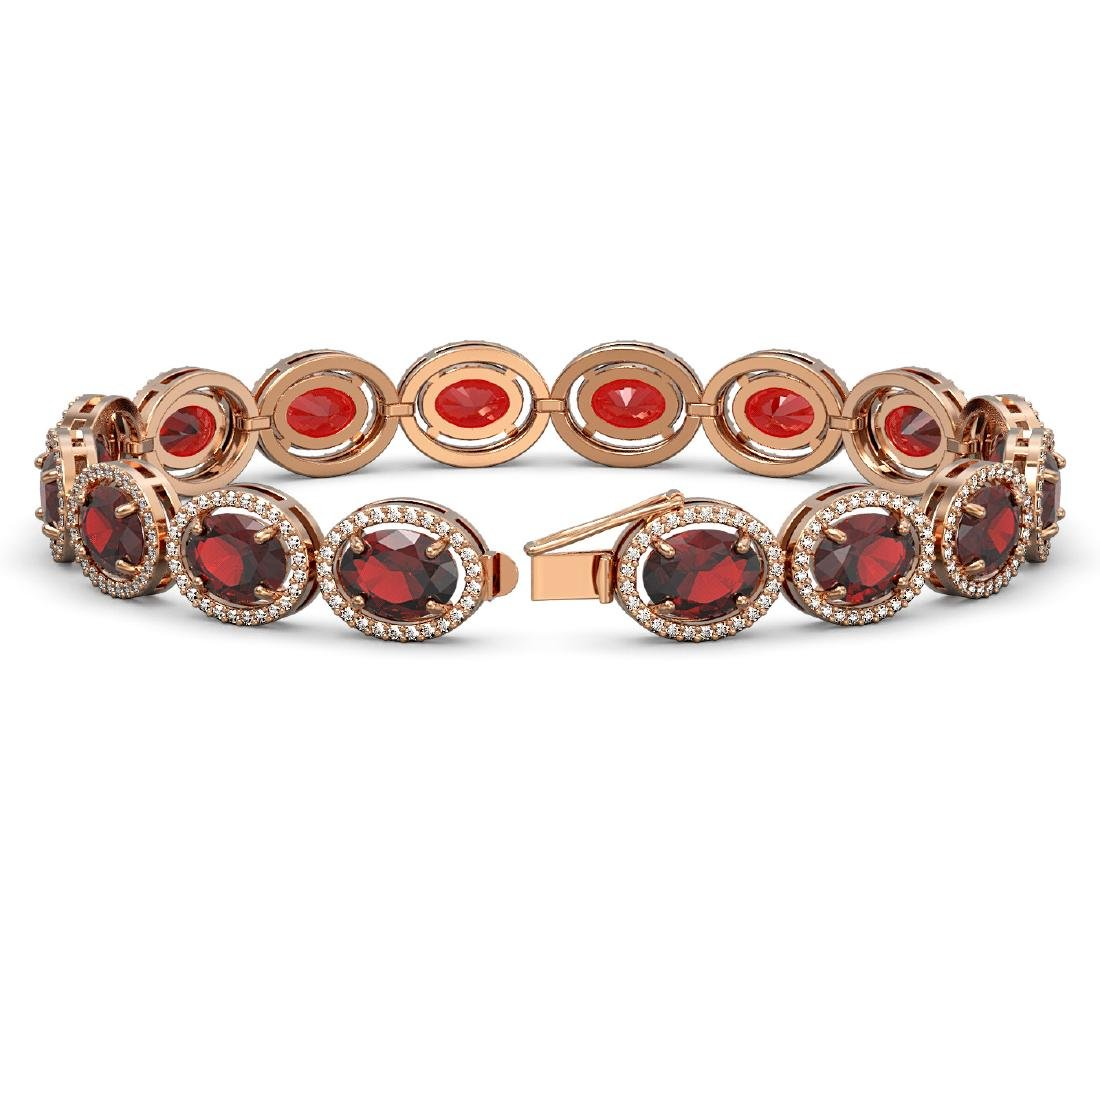 27.28 CTW Garnet & Diamond Halo Bracelet 10K Rose Gold - 2